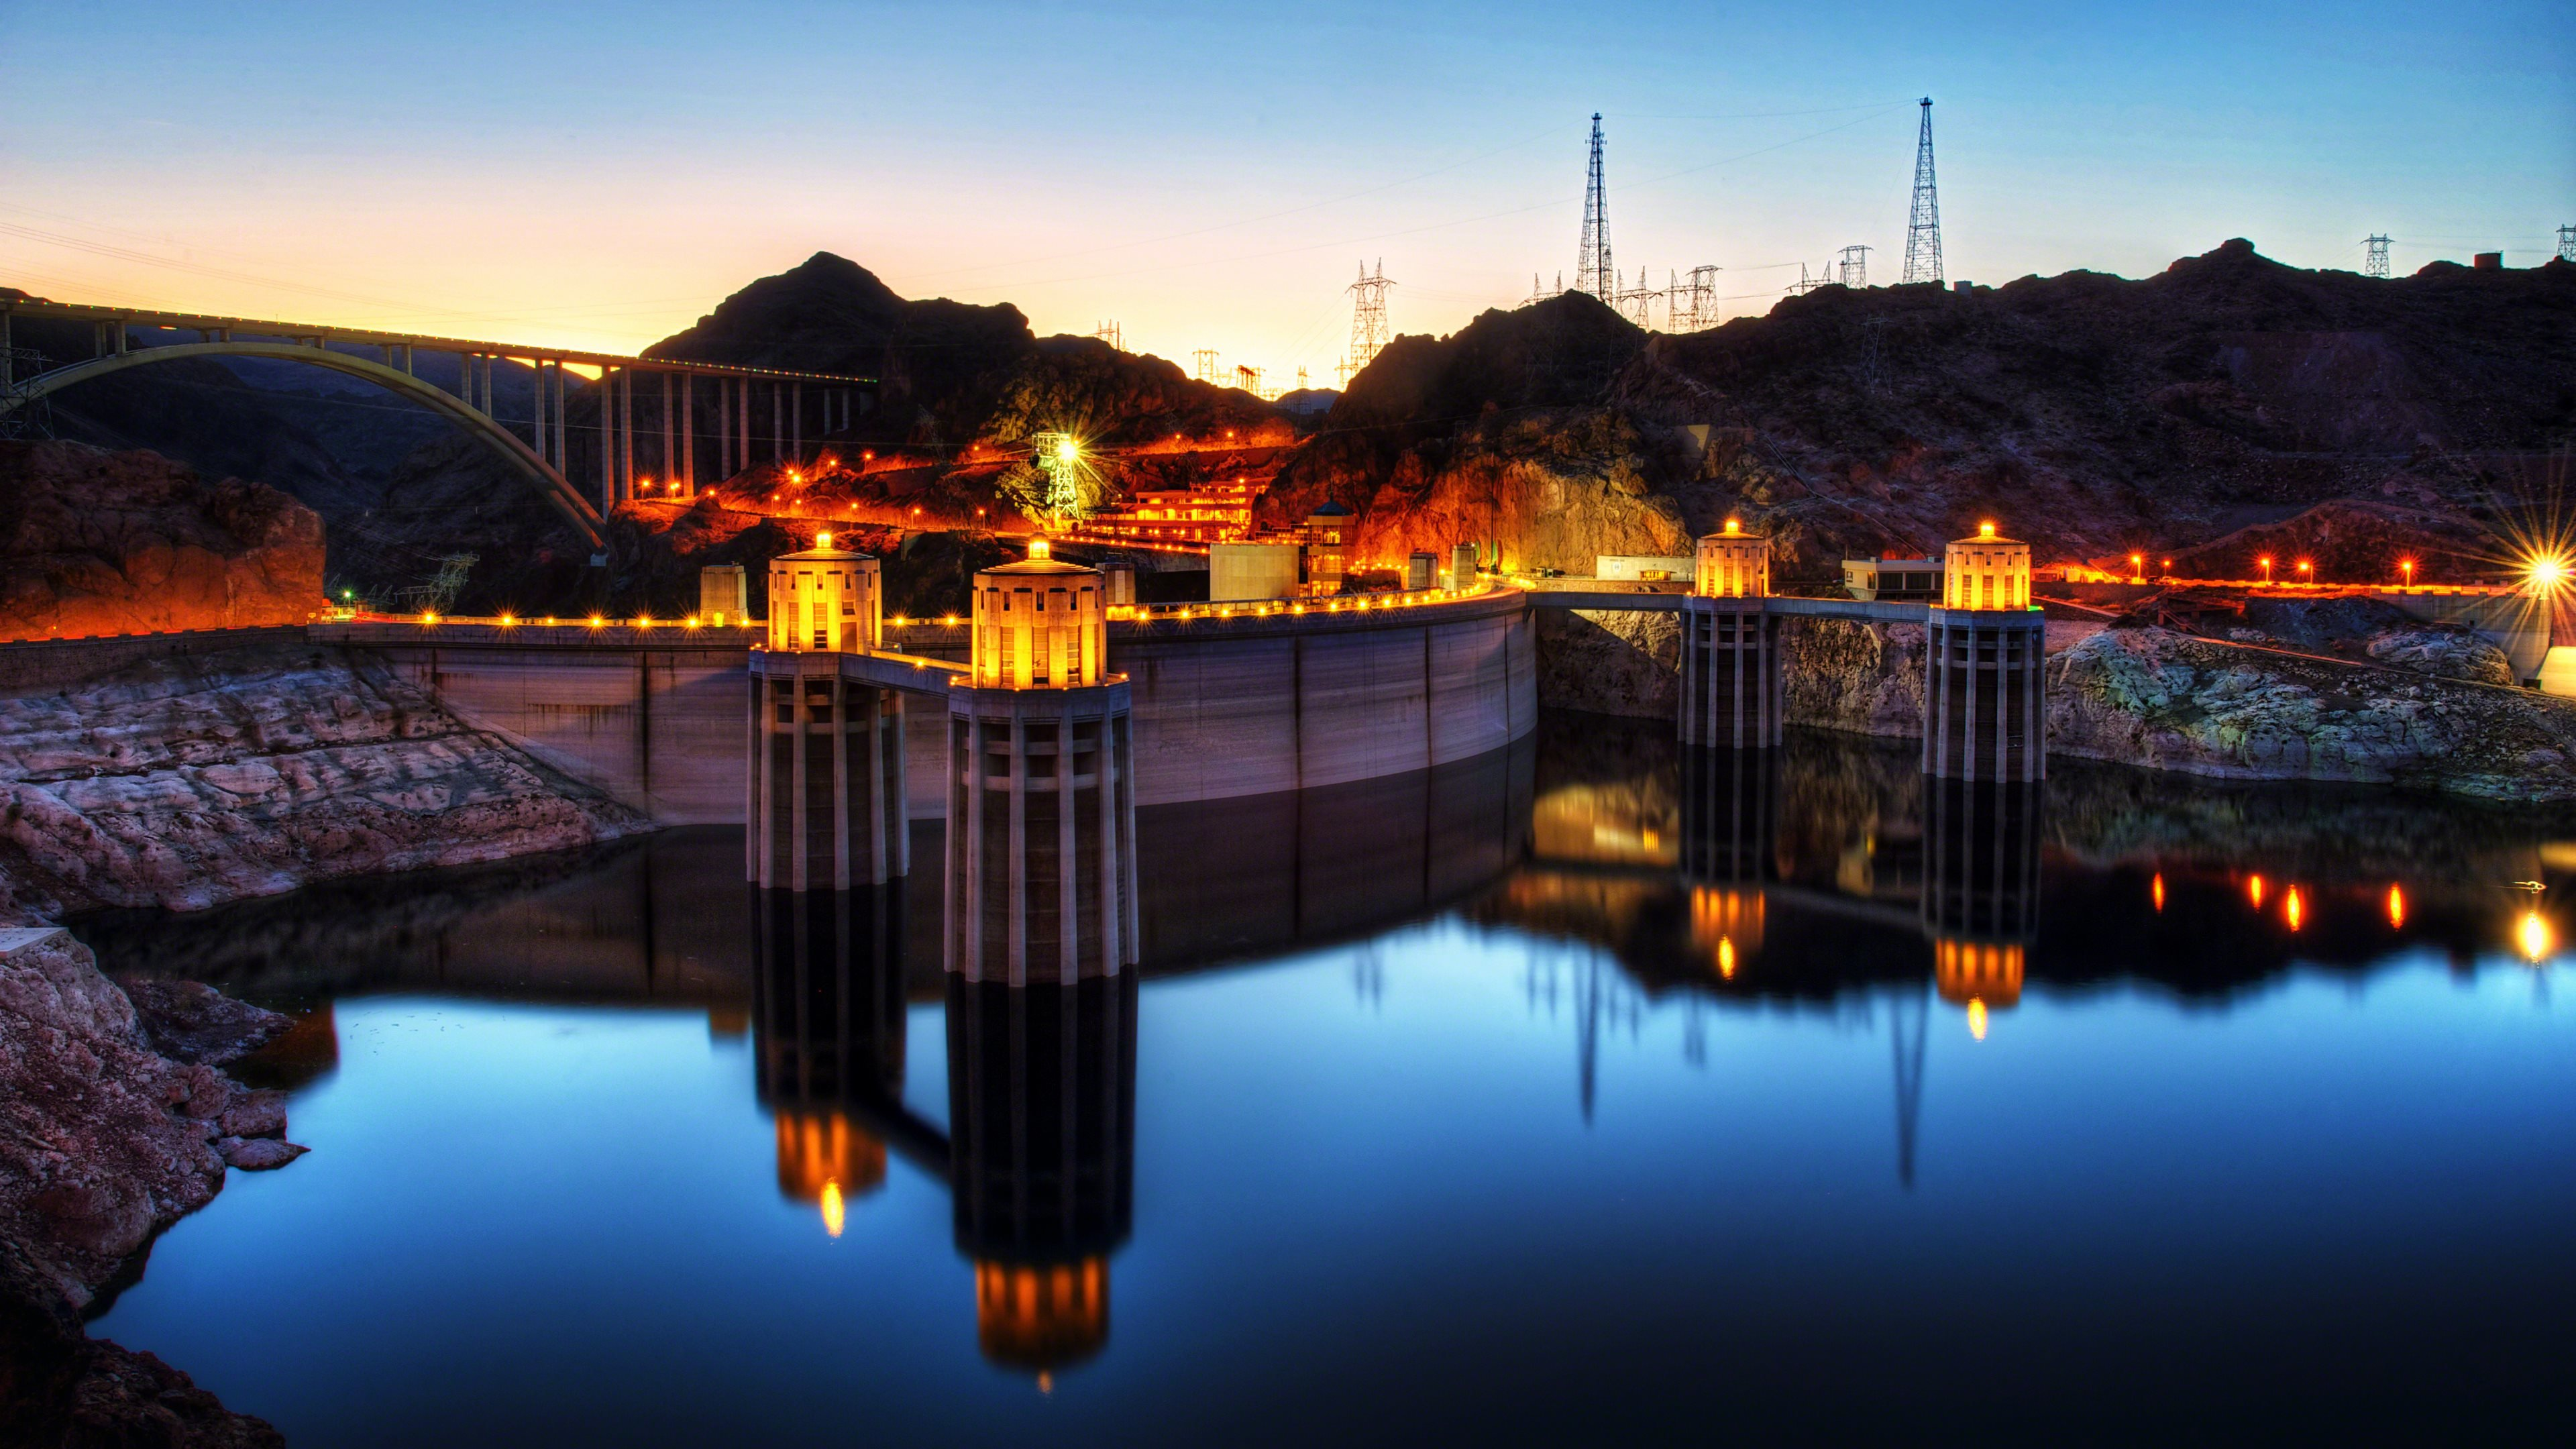 Hoover Dam wallpapers HD for desktop backgrounds 3840x2160